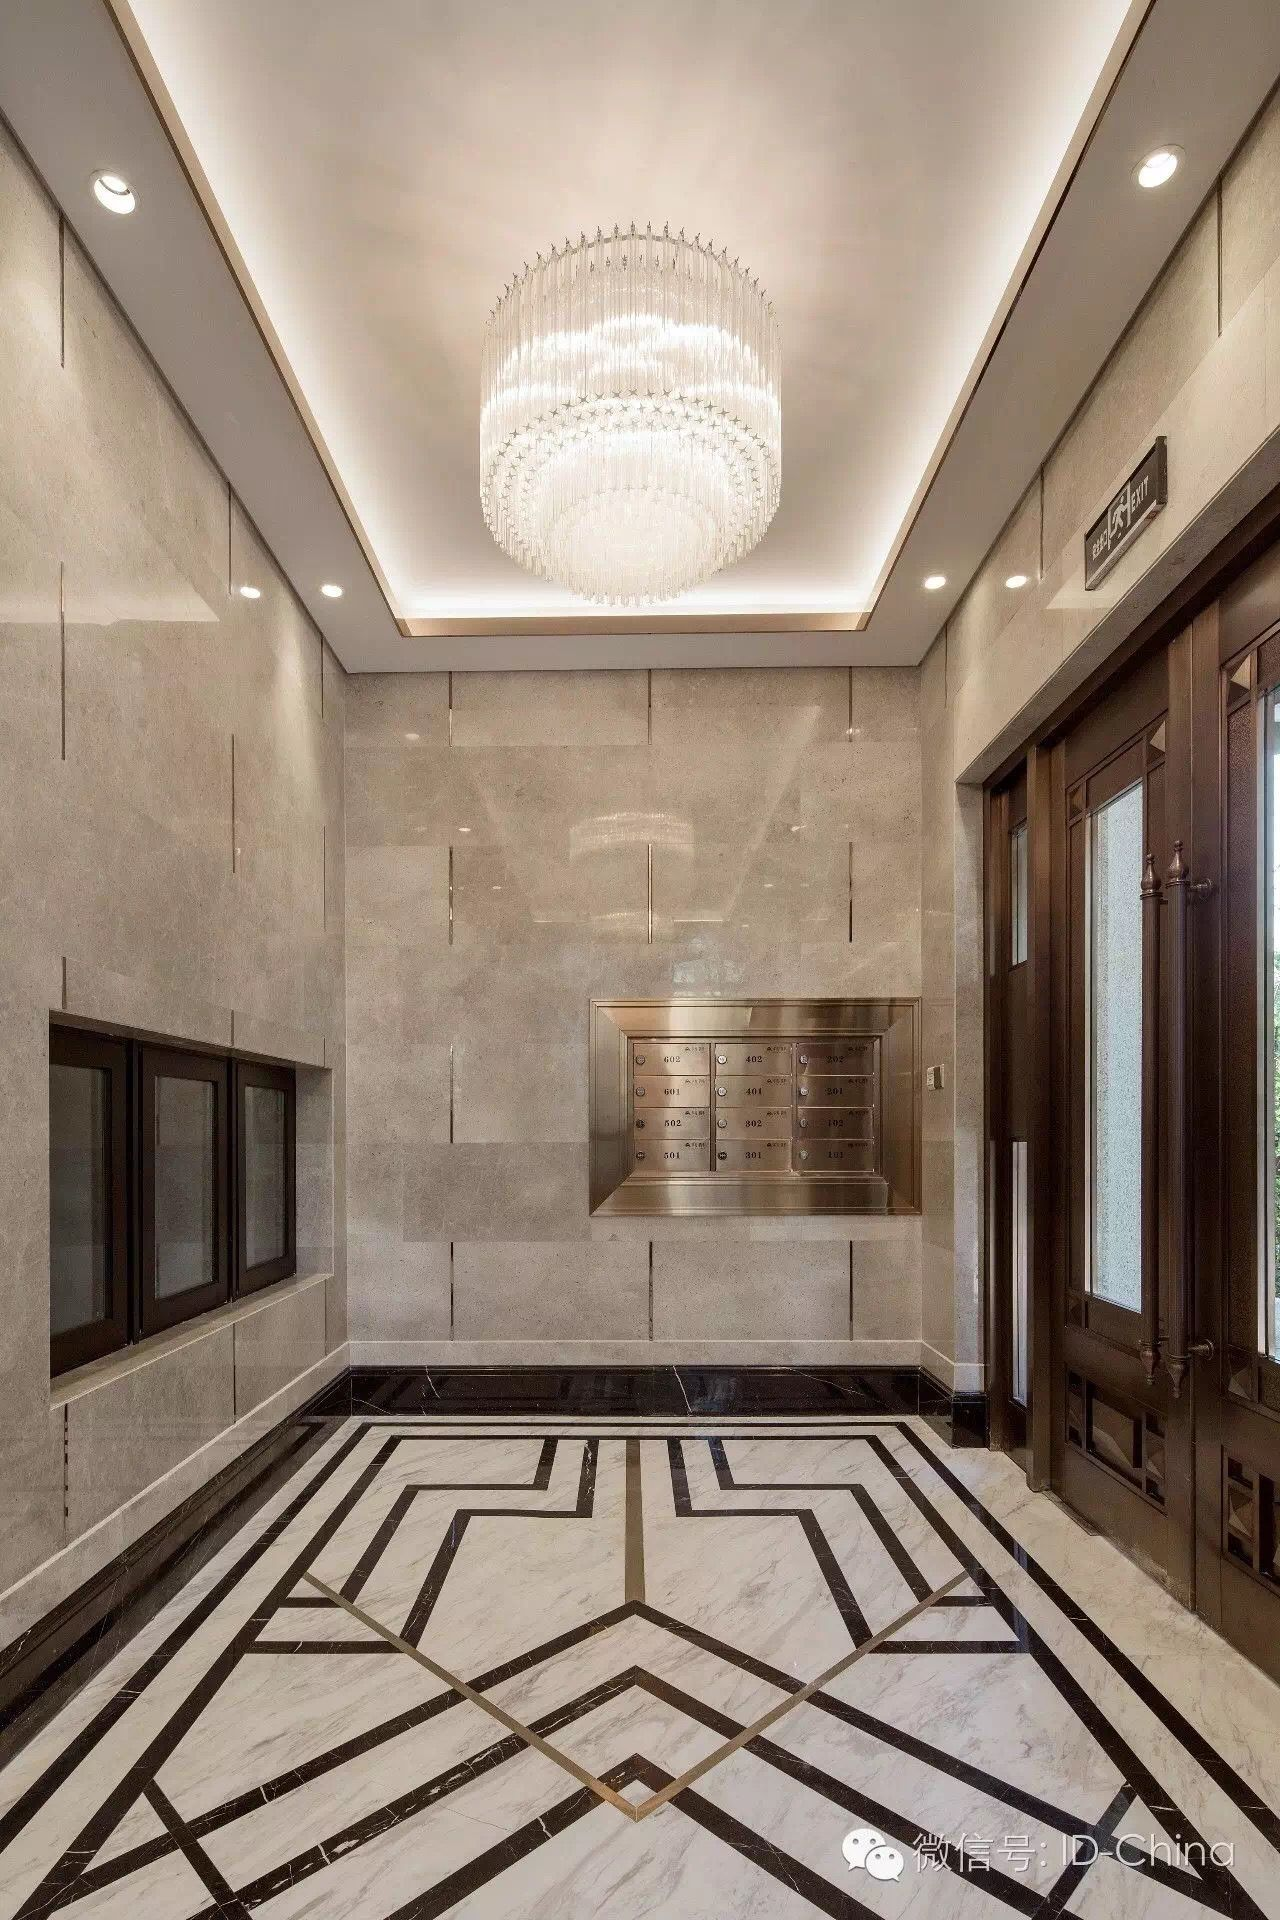 exquisite retro lift lobby tile pinterest art d co couloir et revetement. Black Bedroom Furniture Sets. Home Design Ideas